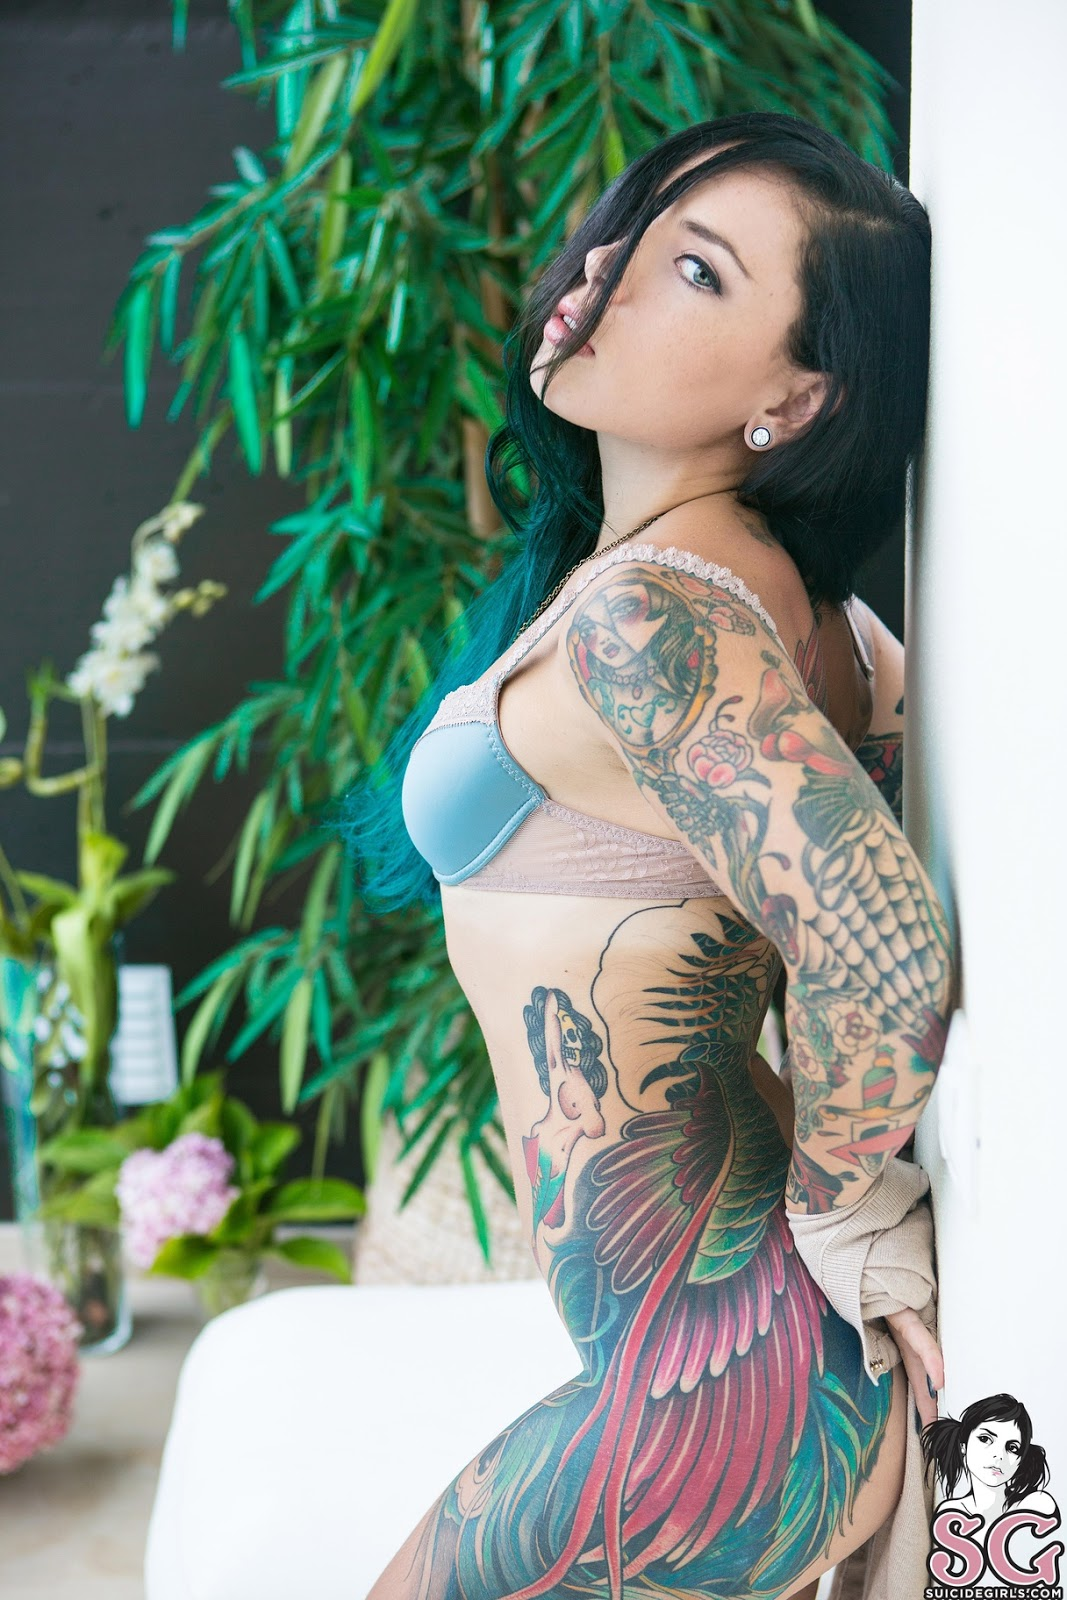 Agree, Eden suicide nude pictures